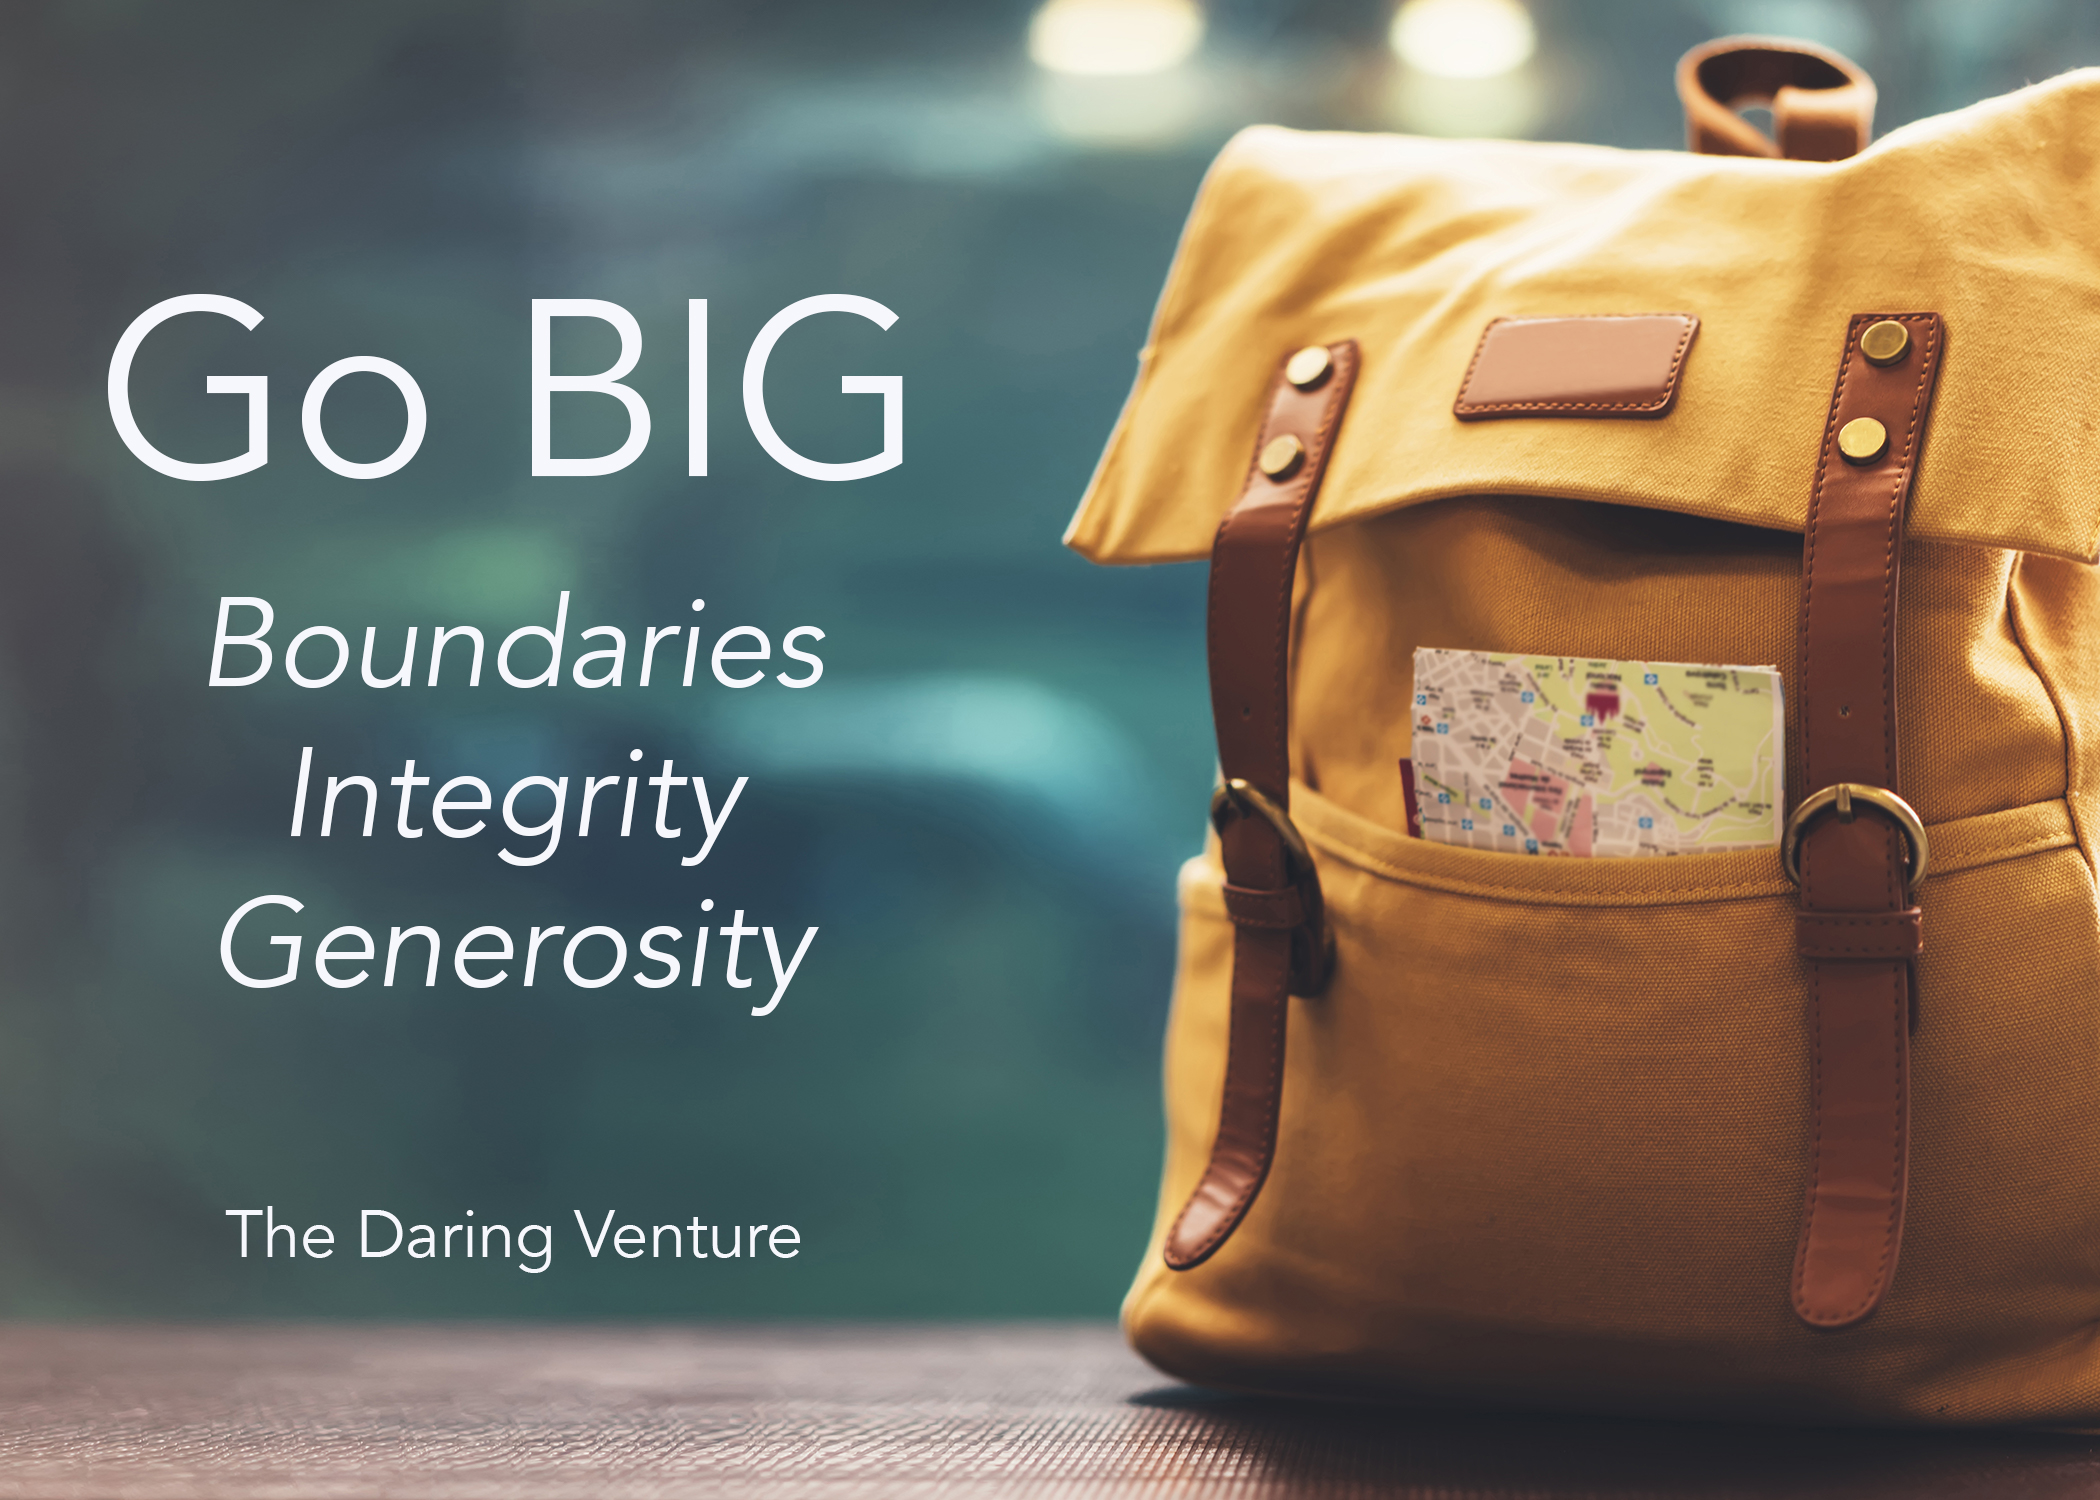 SOLD OUT: Brene Brown's GO BIG (Boundaries, Integrity, Generosity) Idea with Daring Venture